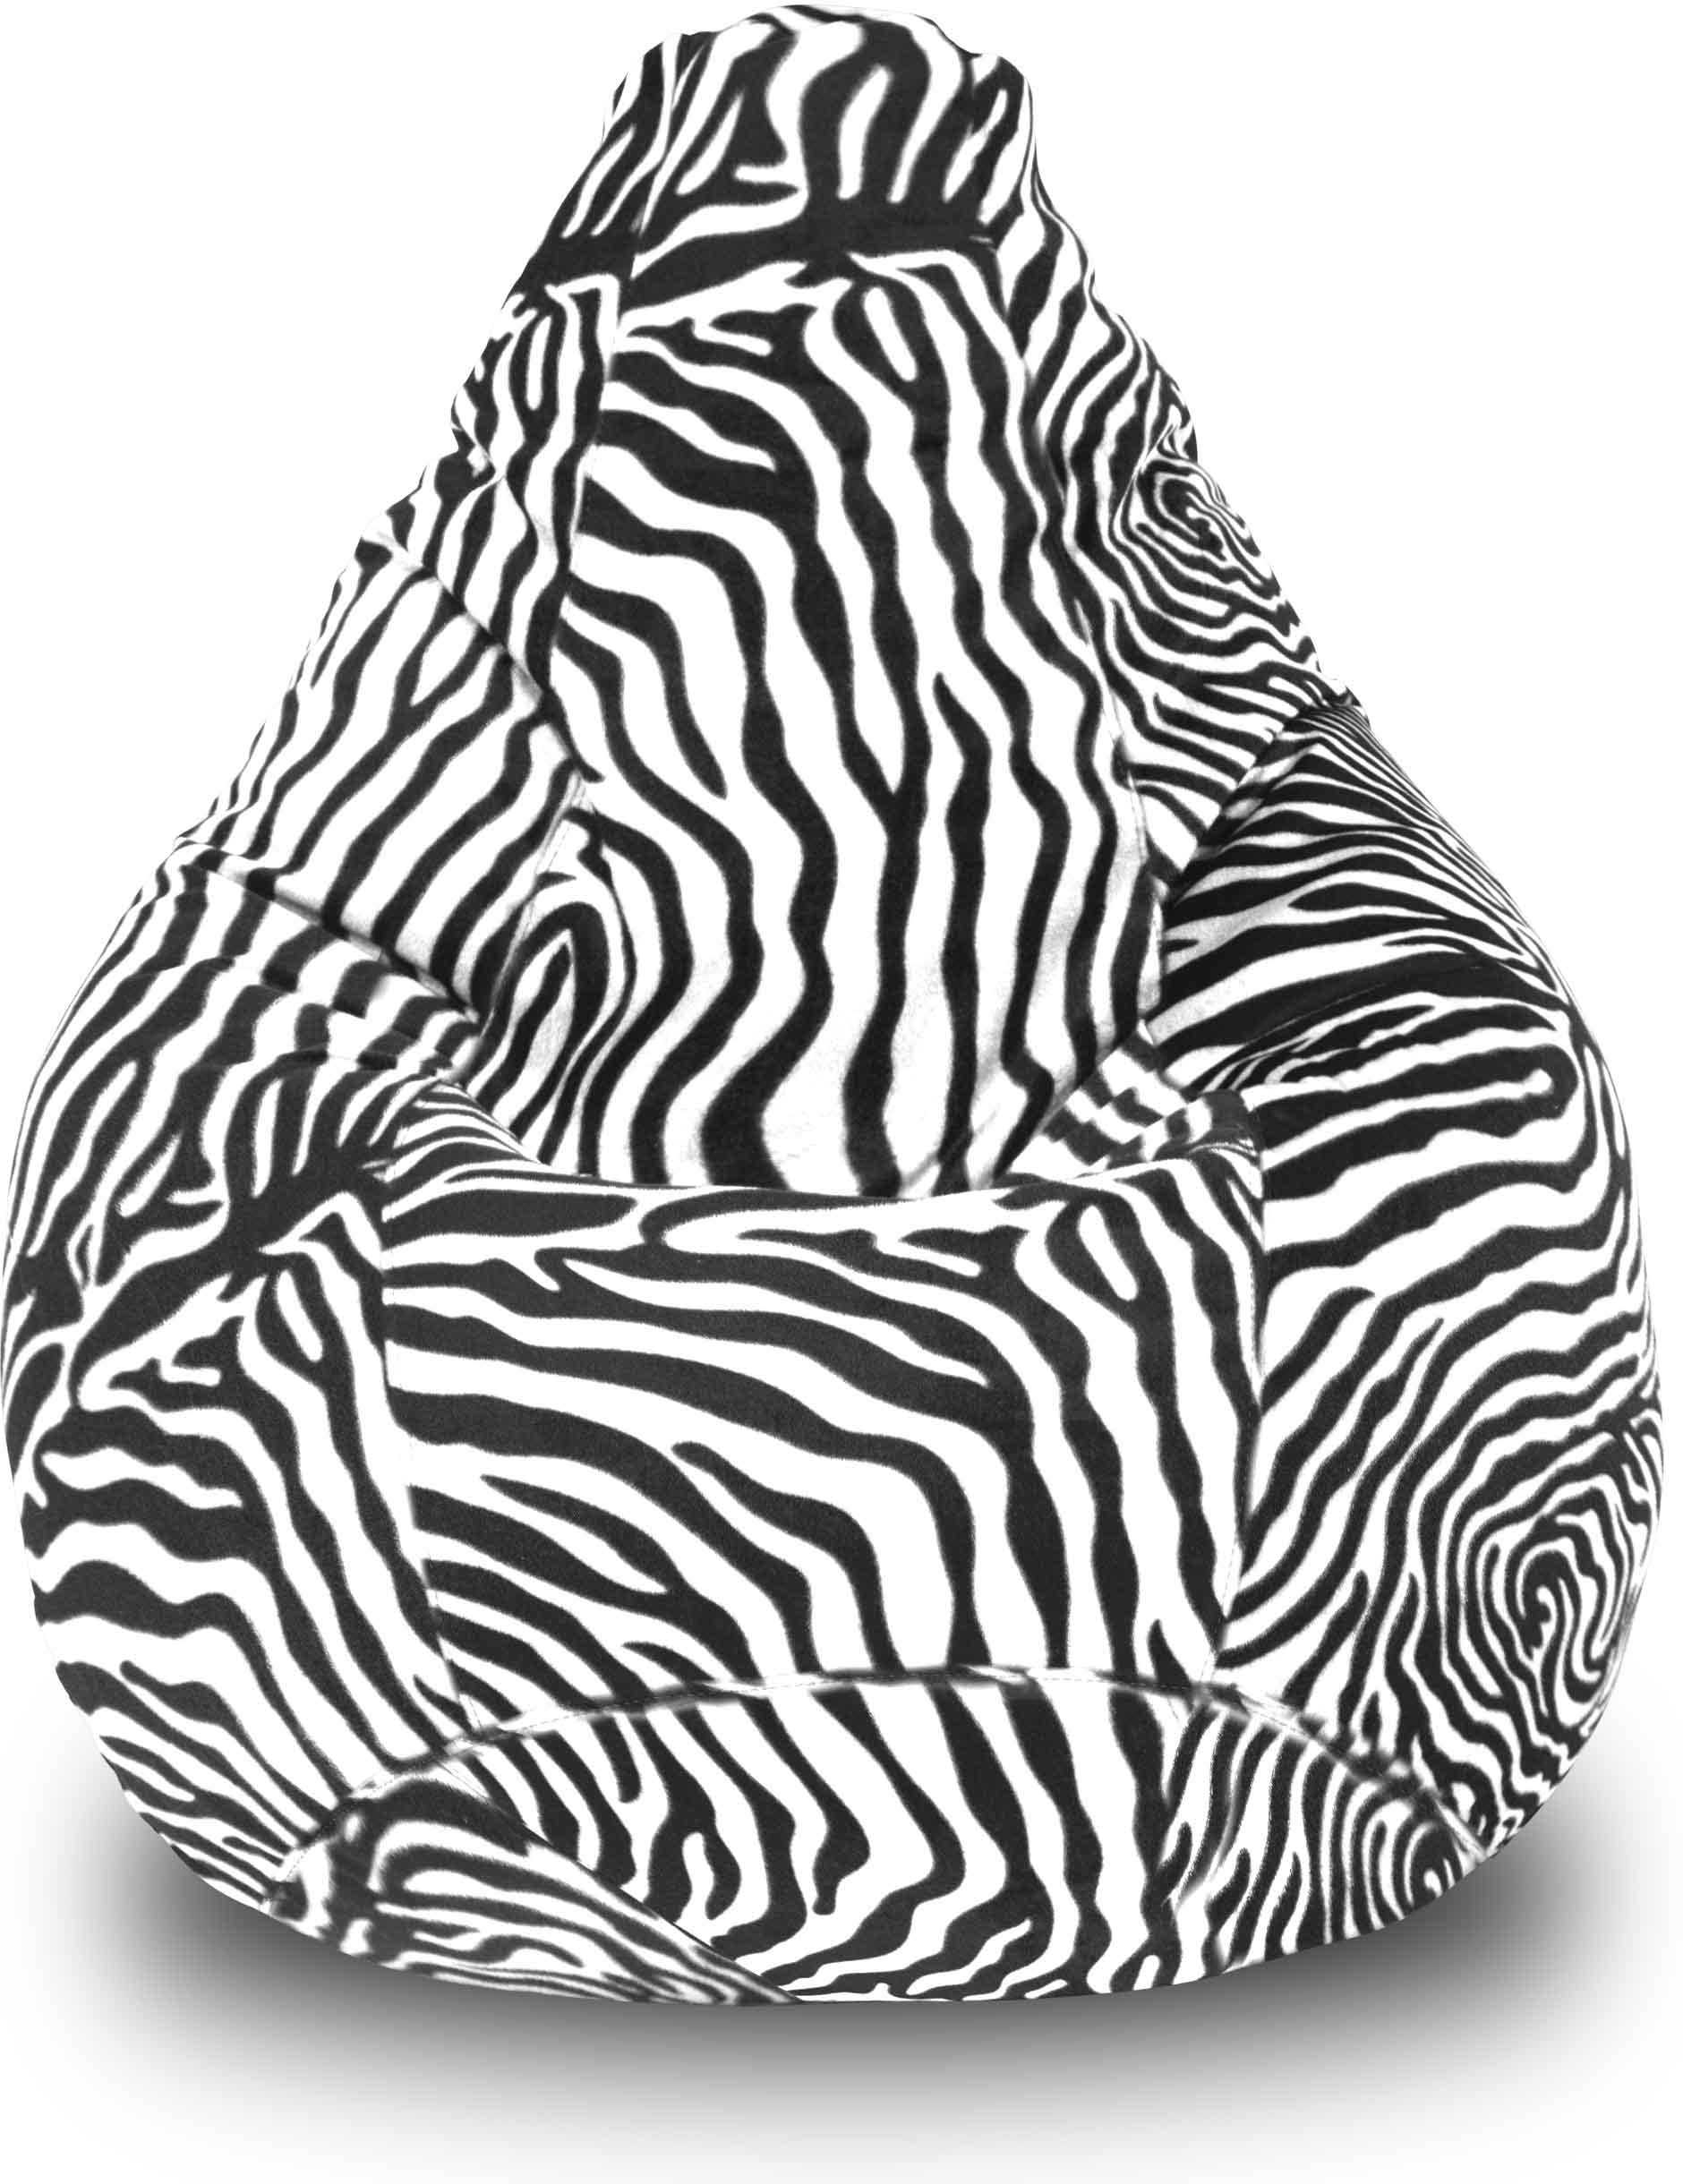 View Dolphin Bean Bags XXL Dolphin Xxl Bean Bag Zebra With Fillers/Beans